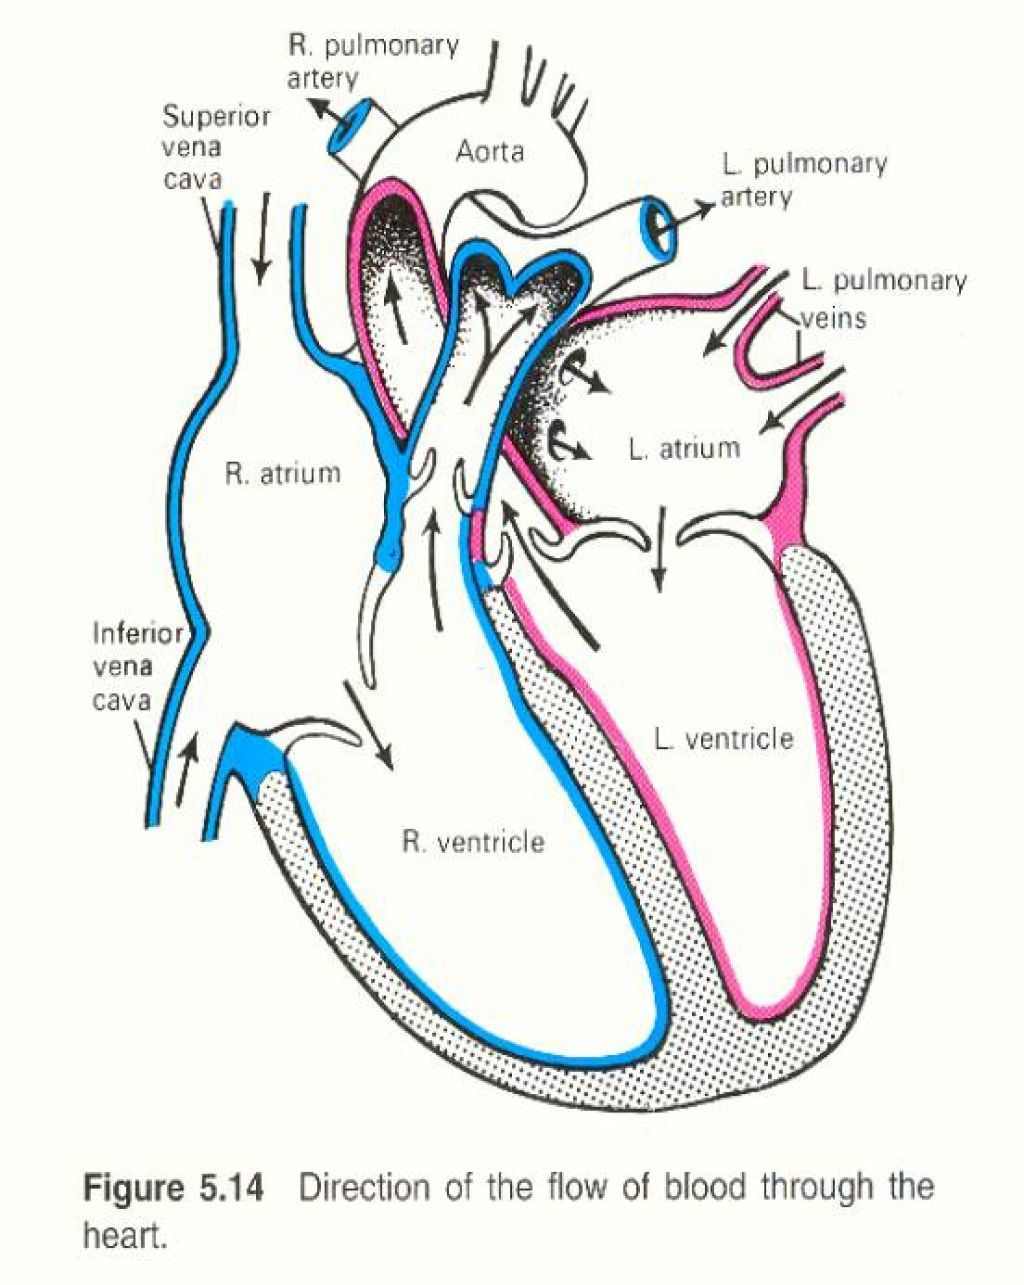 Circulatory System Diagram With Labels Luxury Free Human Heart Sketch Diagram Download Free Clip Art In 2020 Heart Diagram Human Heart Diagram Simple Heart Diagram